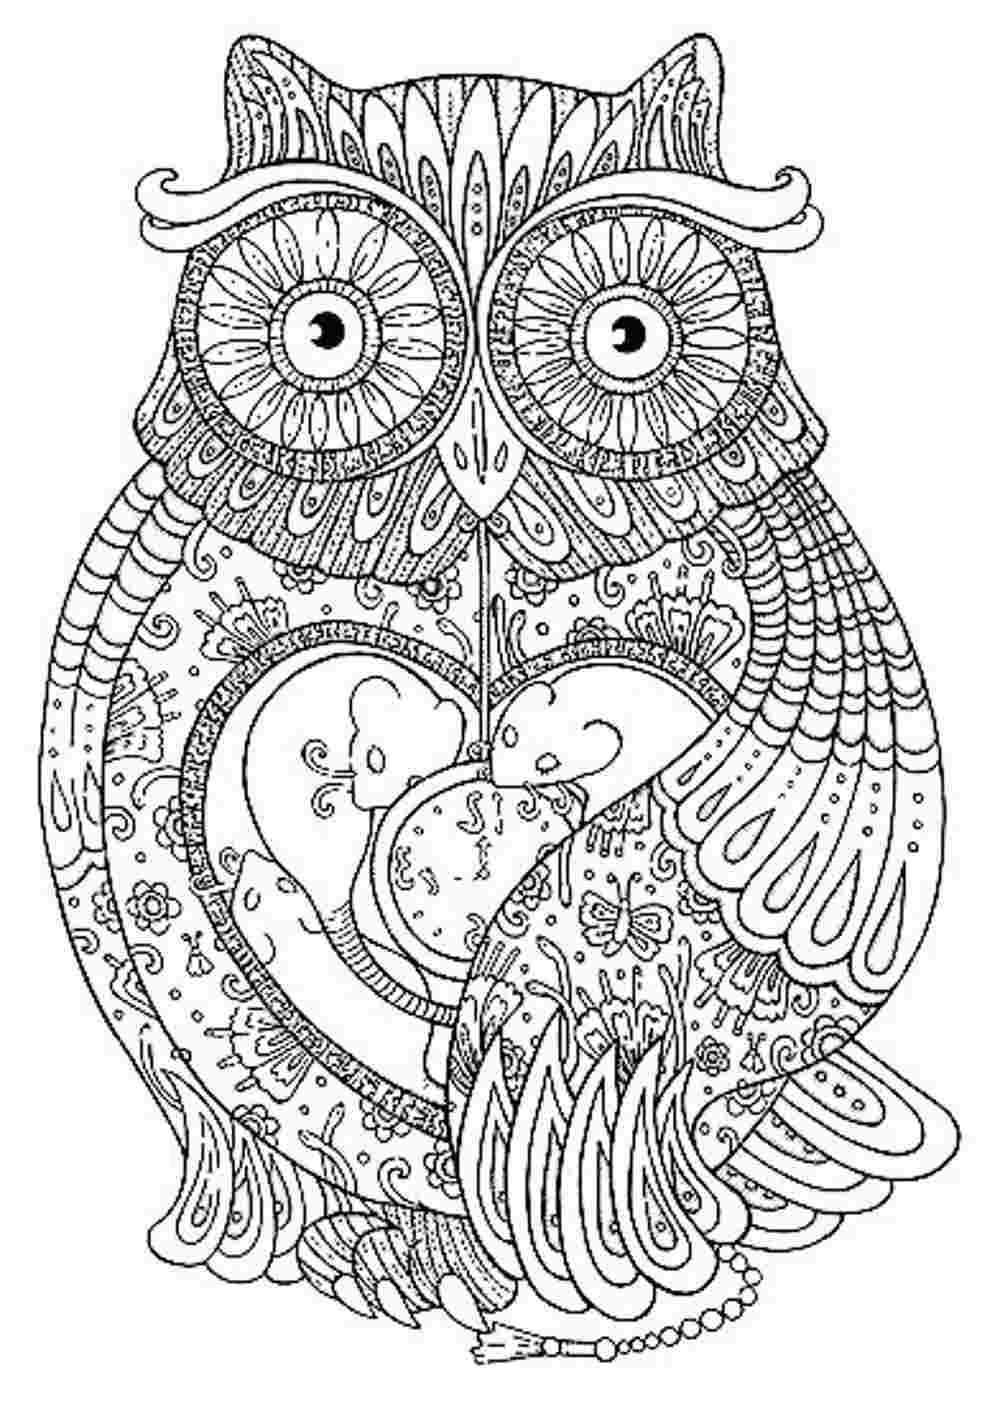 Hard Coloring Pages Owl Coloring Pages Detailed Coloring Pages Mandala Coloring Pages